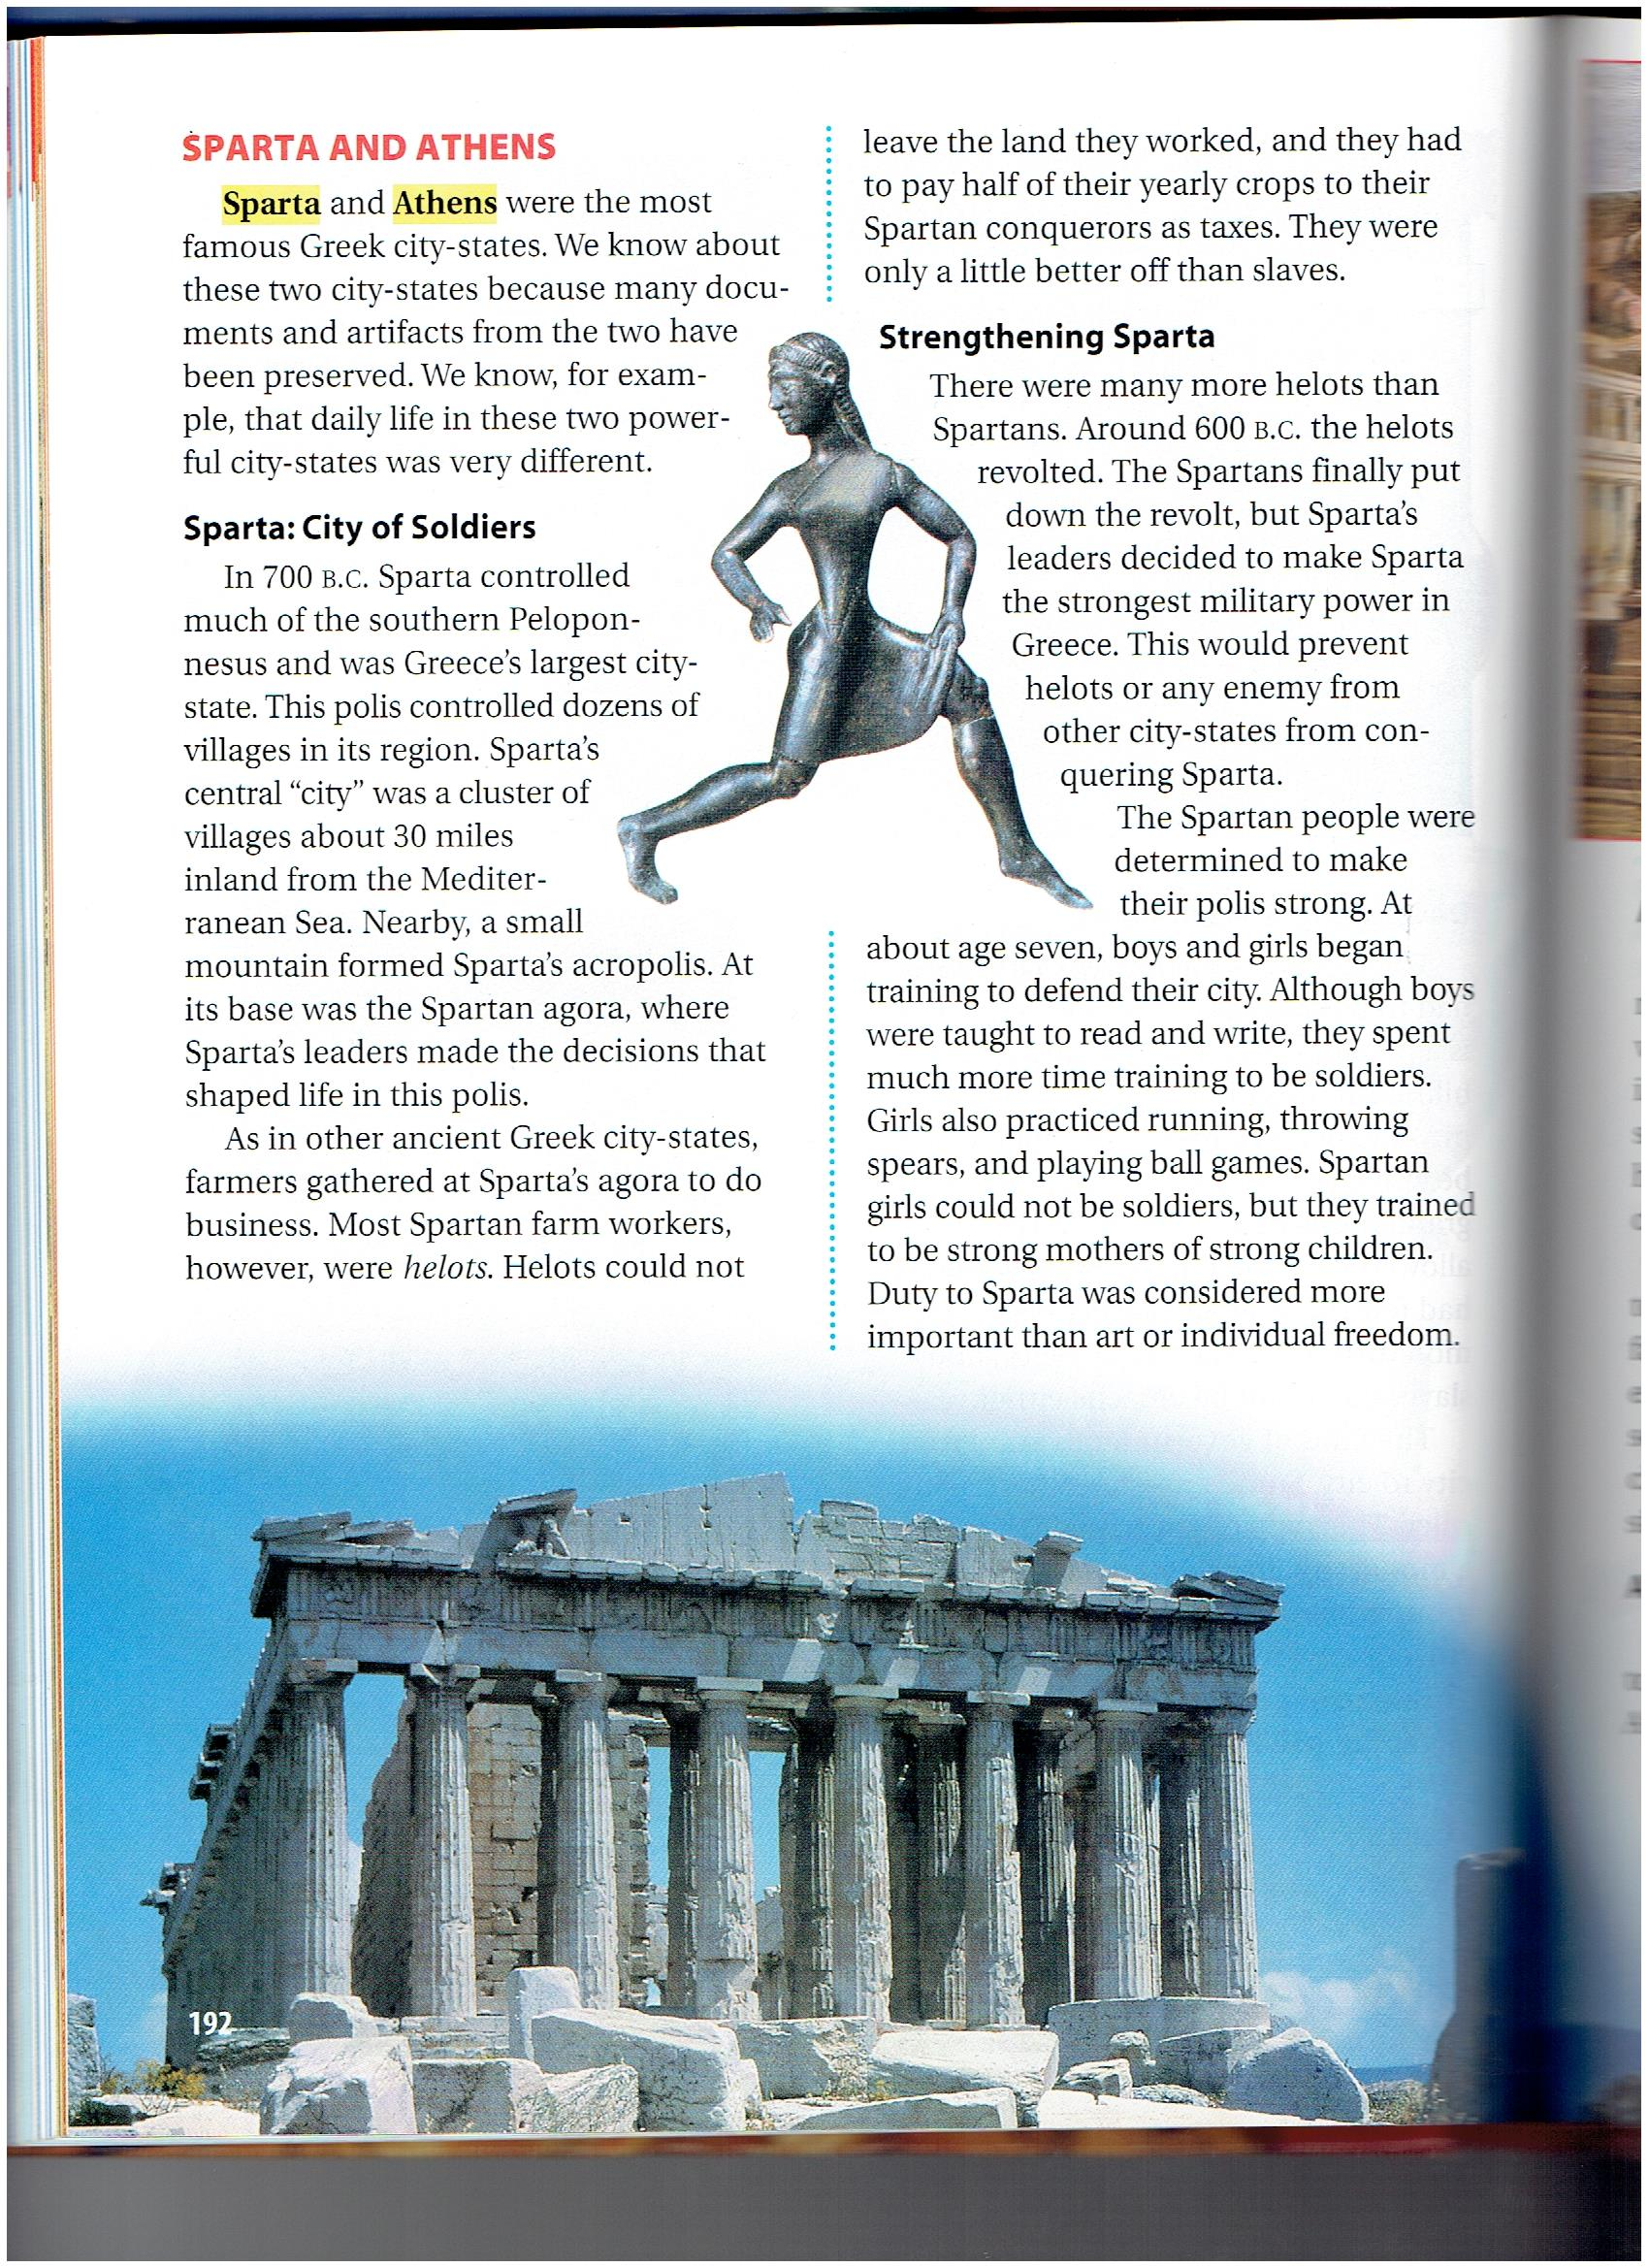 an analysis of athens and sparta both city states in greece in ancient times Sparta and athens during different times in city-states in ancient greece  of the ancient period thebes and argos were both.